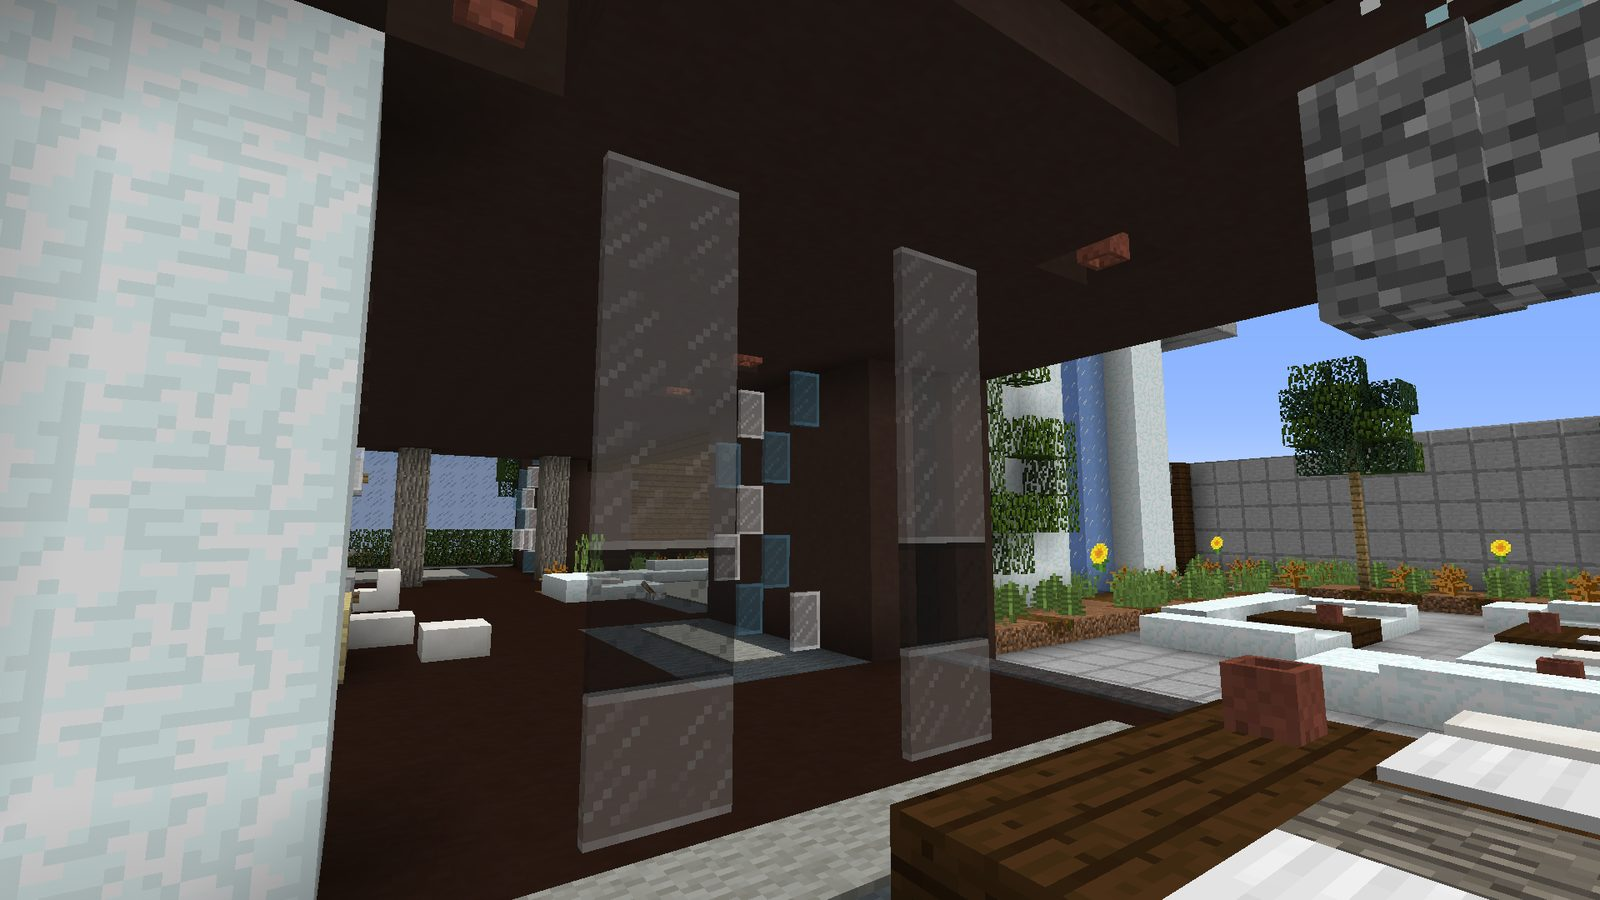 Clear Glass with Connected Textures Resource pack for